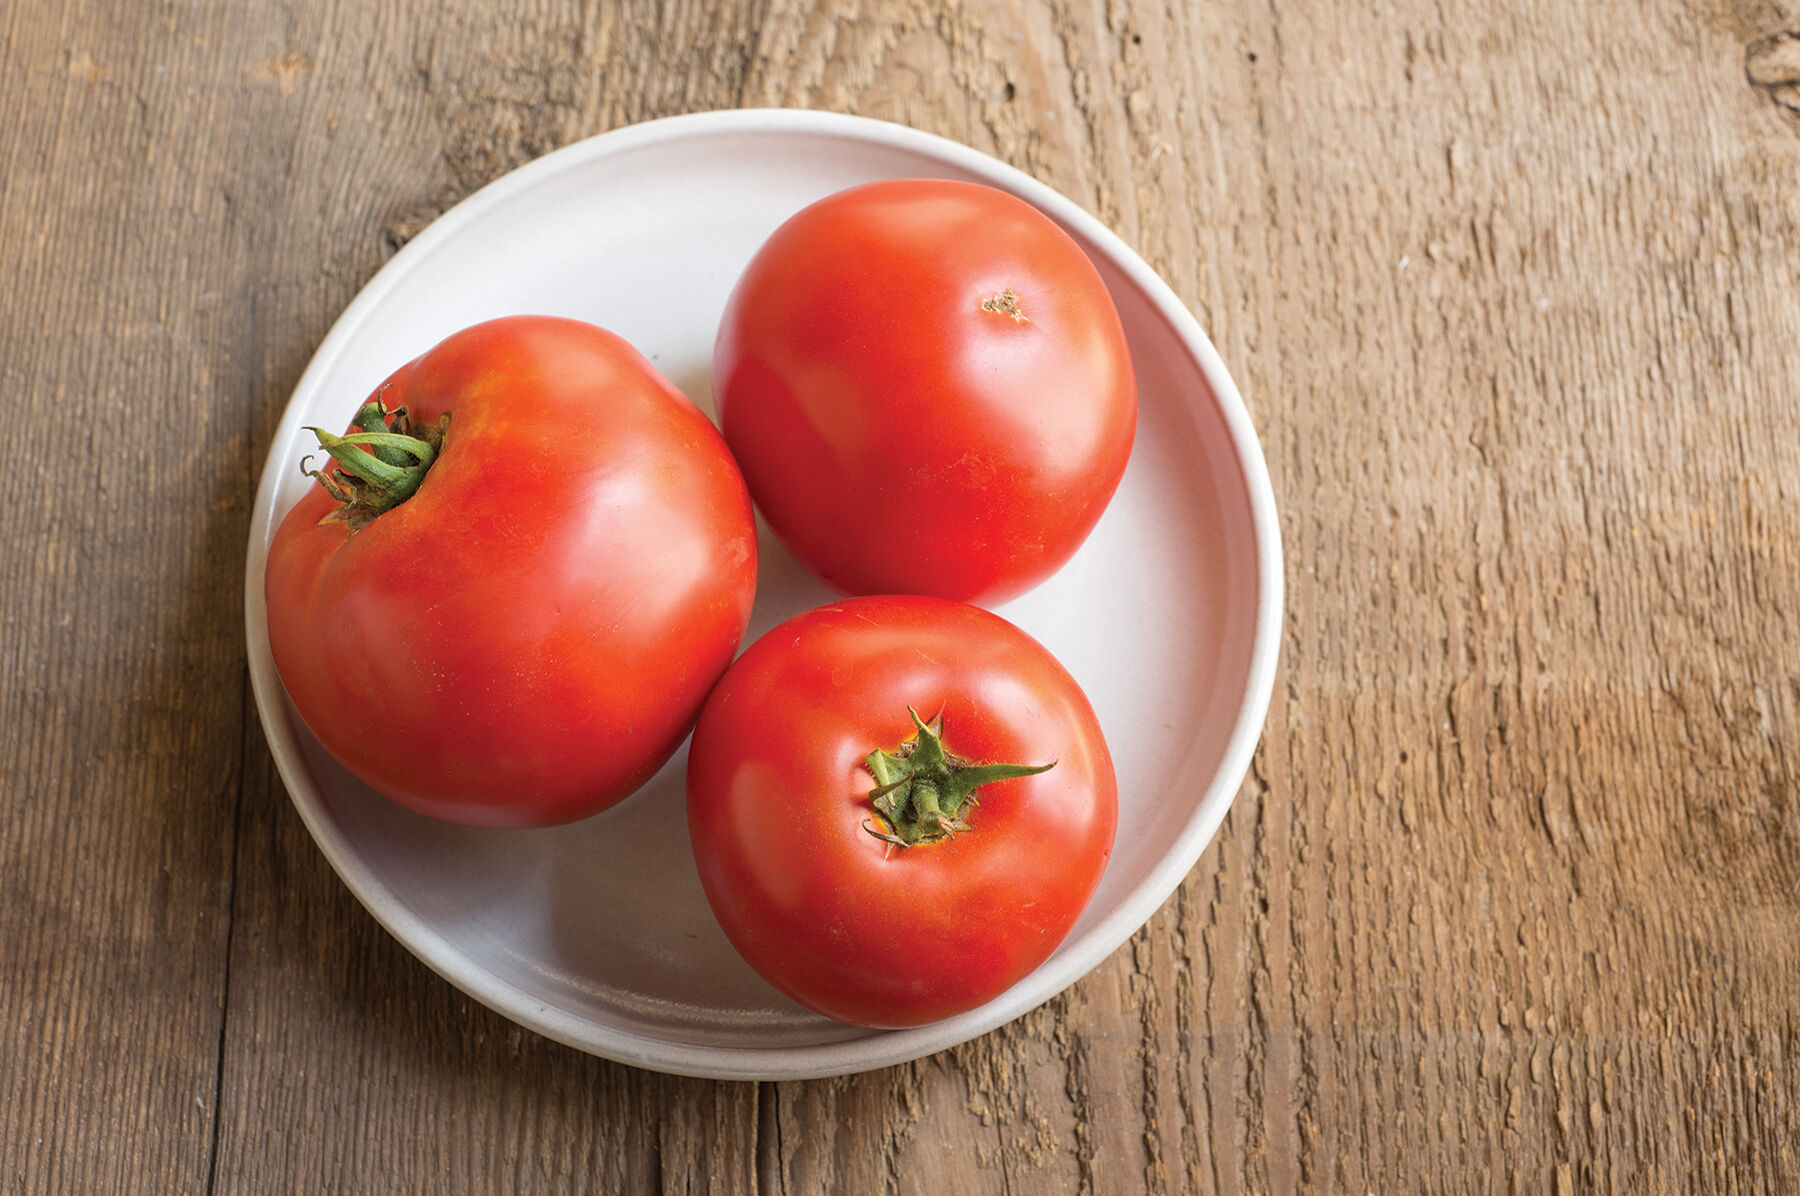 Beefsteak tomato days to maturity